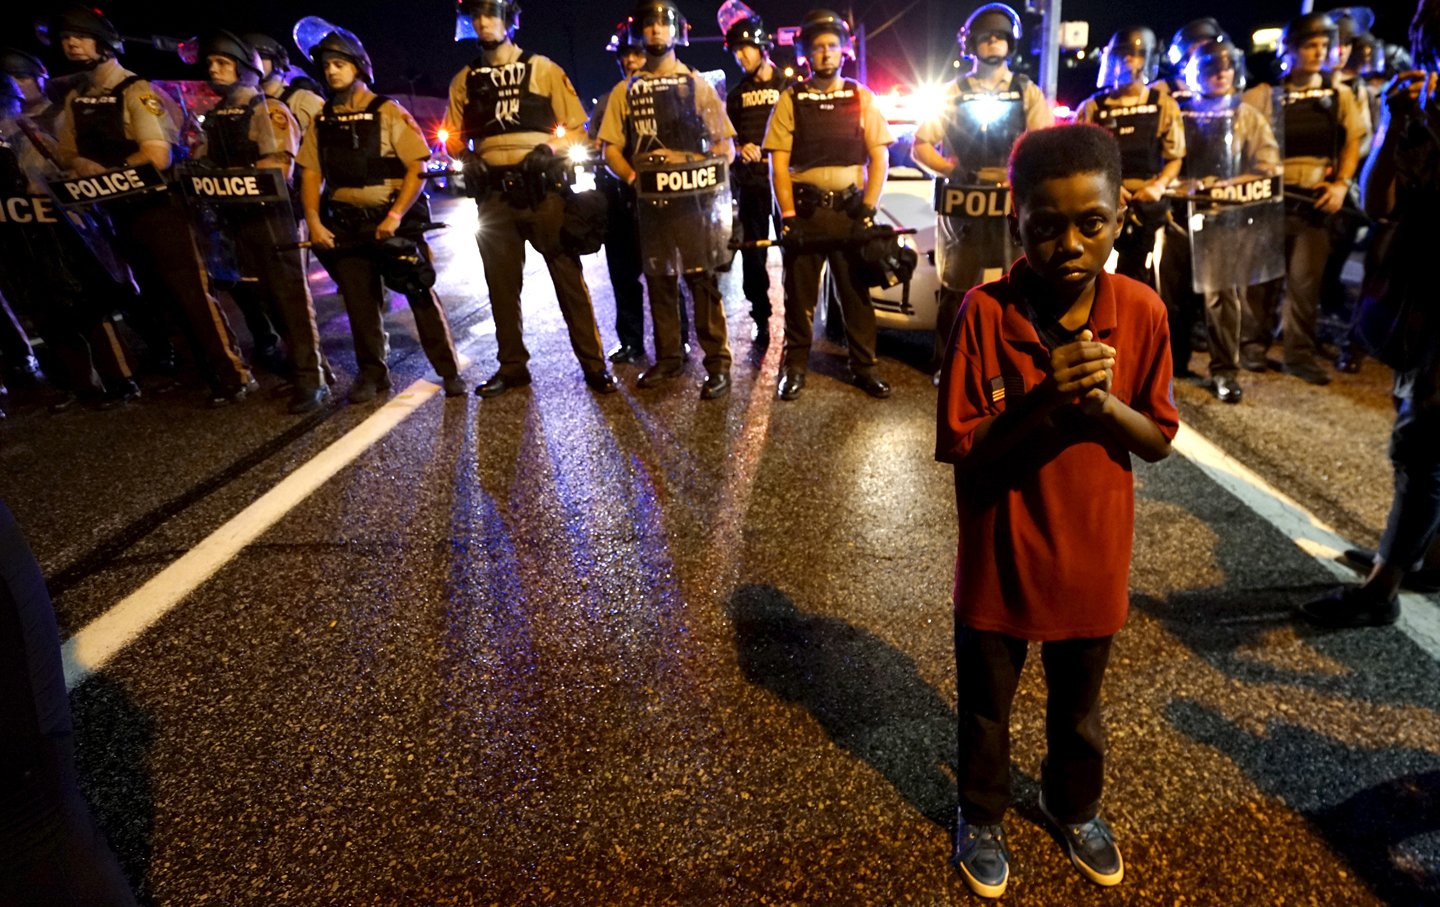 Child stands in front of police